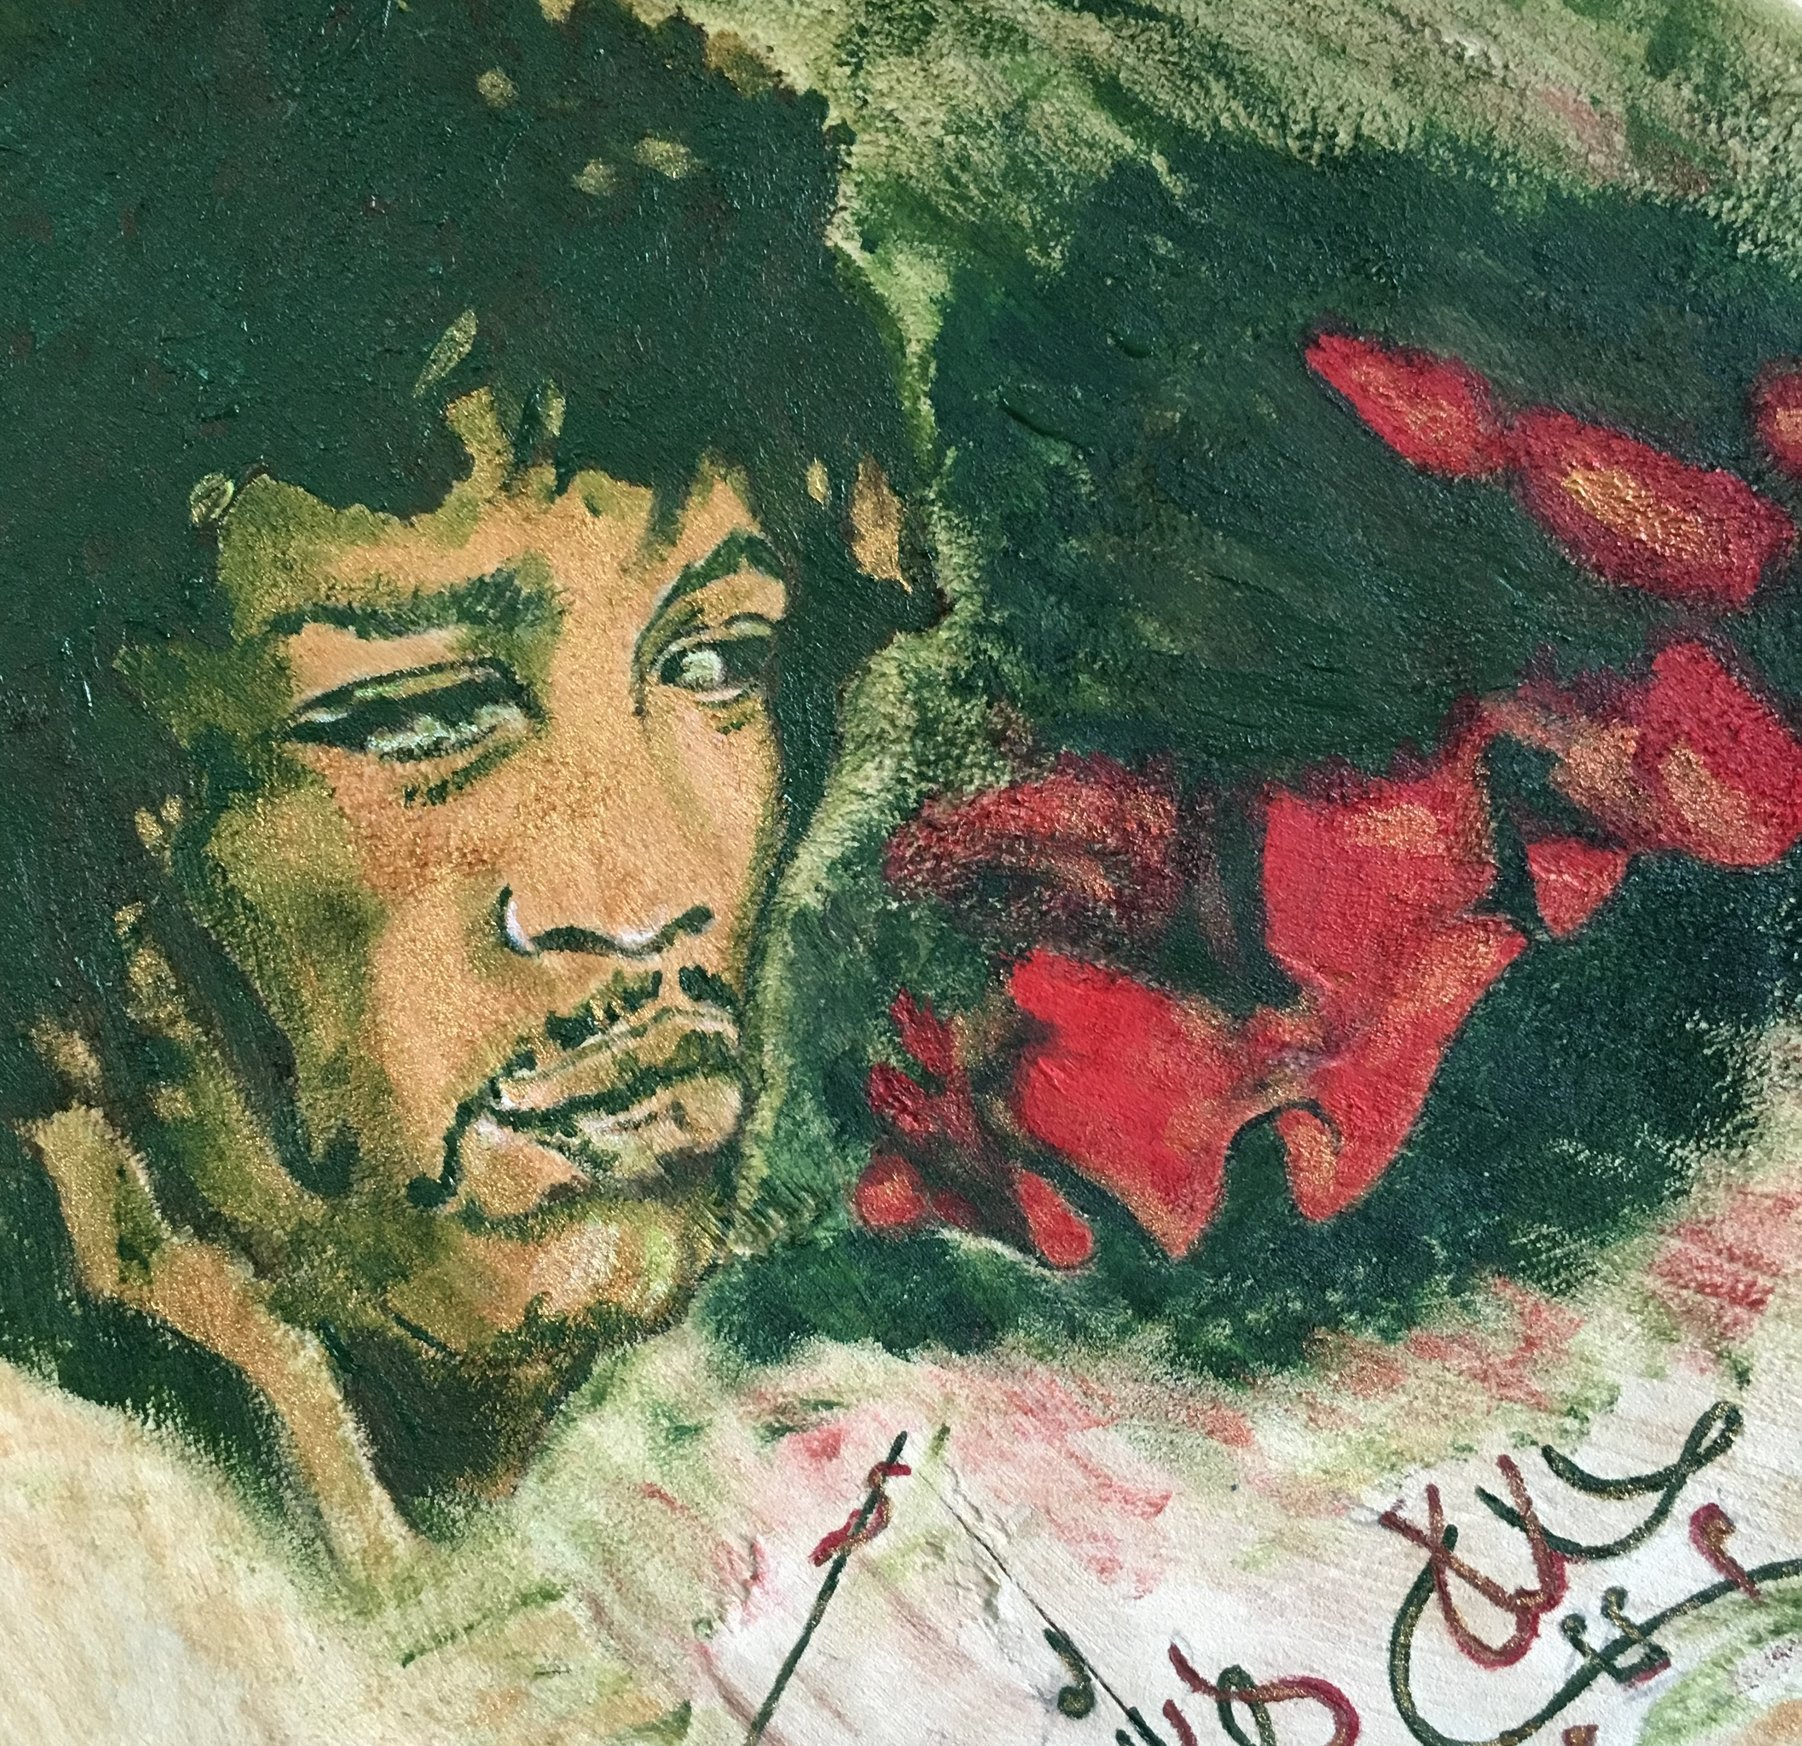 Jimi Hendrix Chair, Detail 2